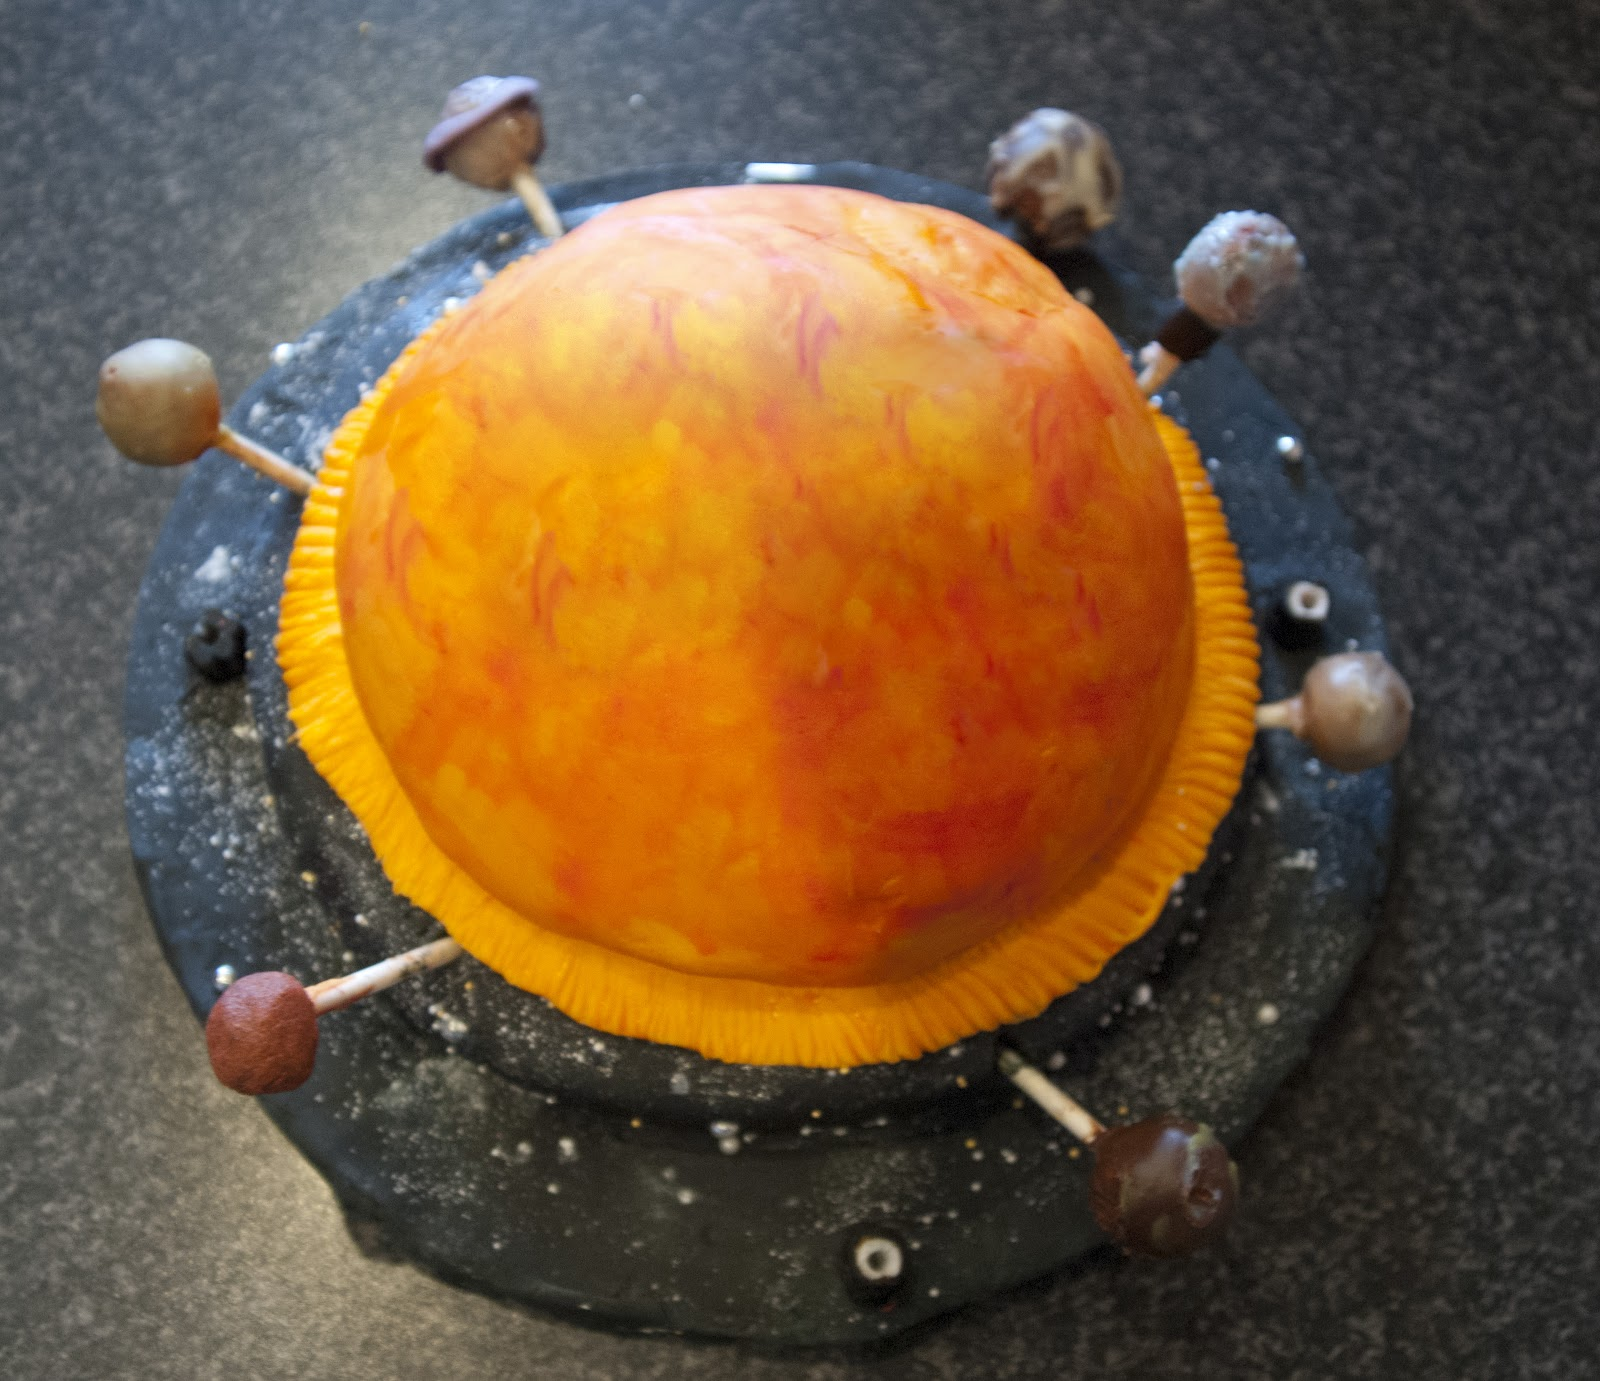 Solar System Wedding Cake - Pics about space